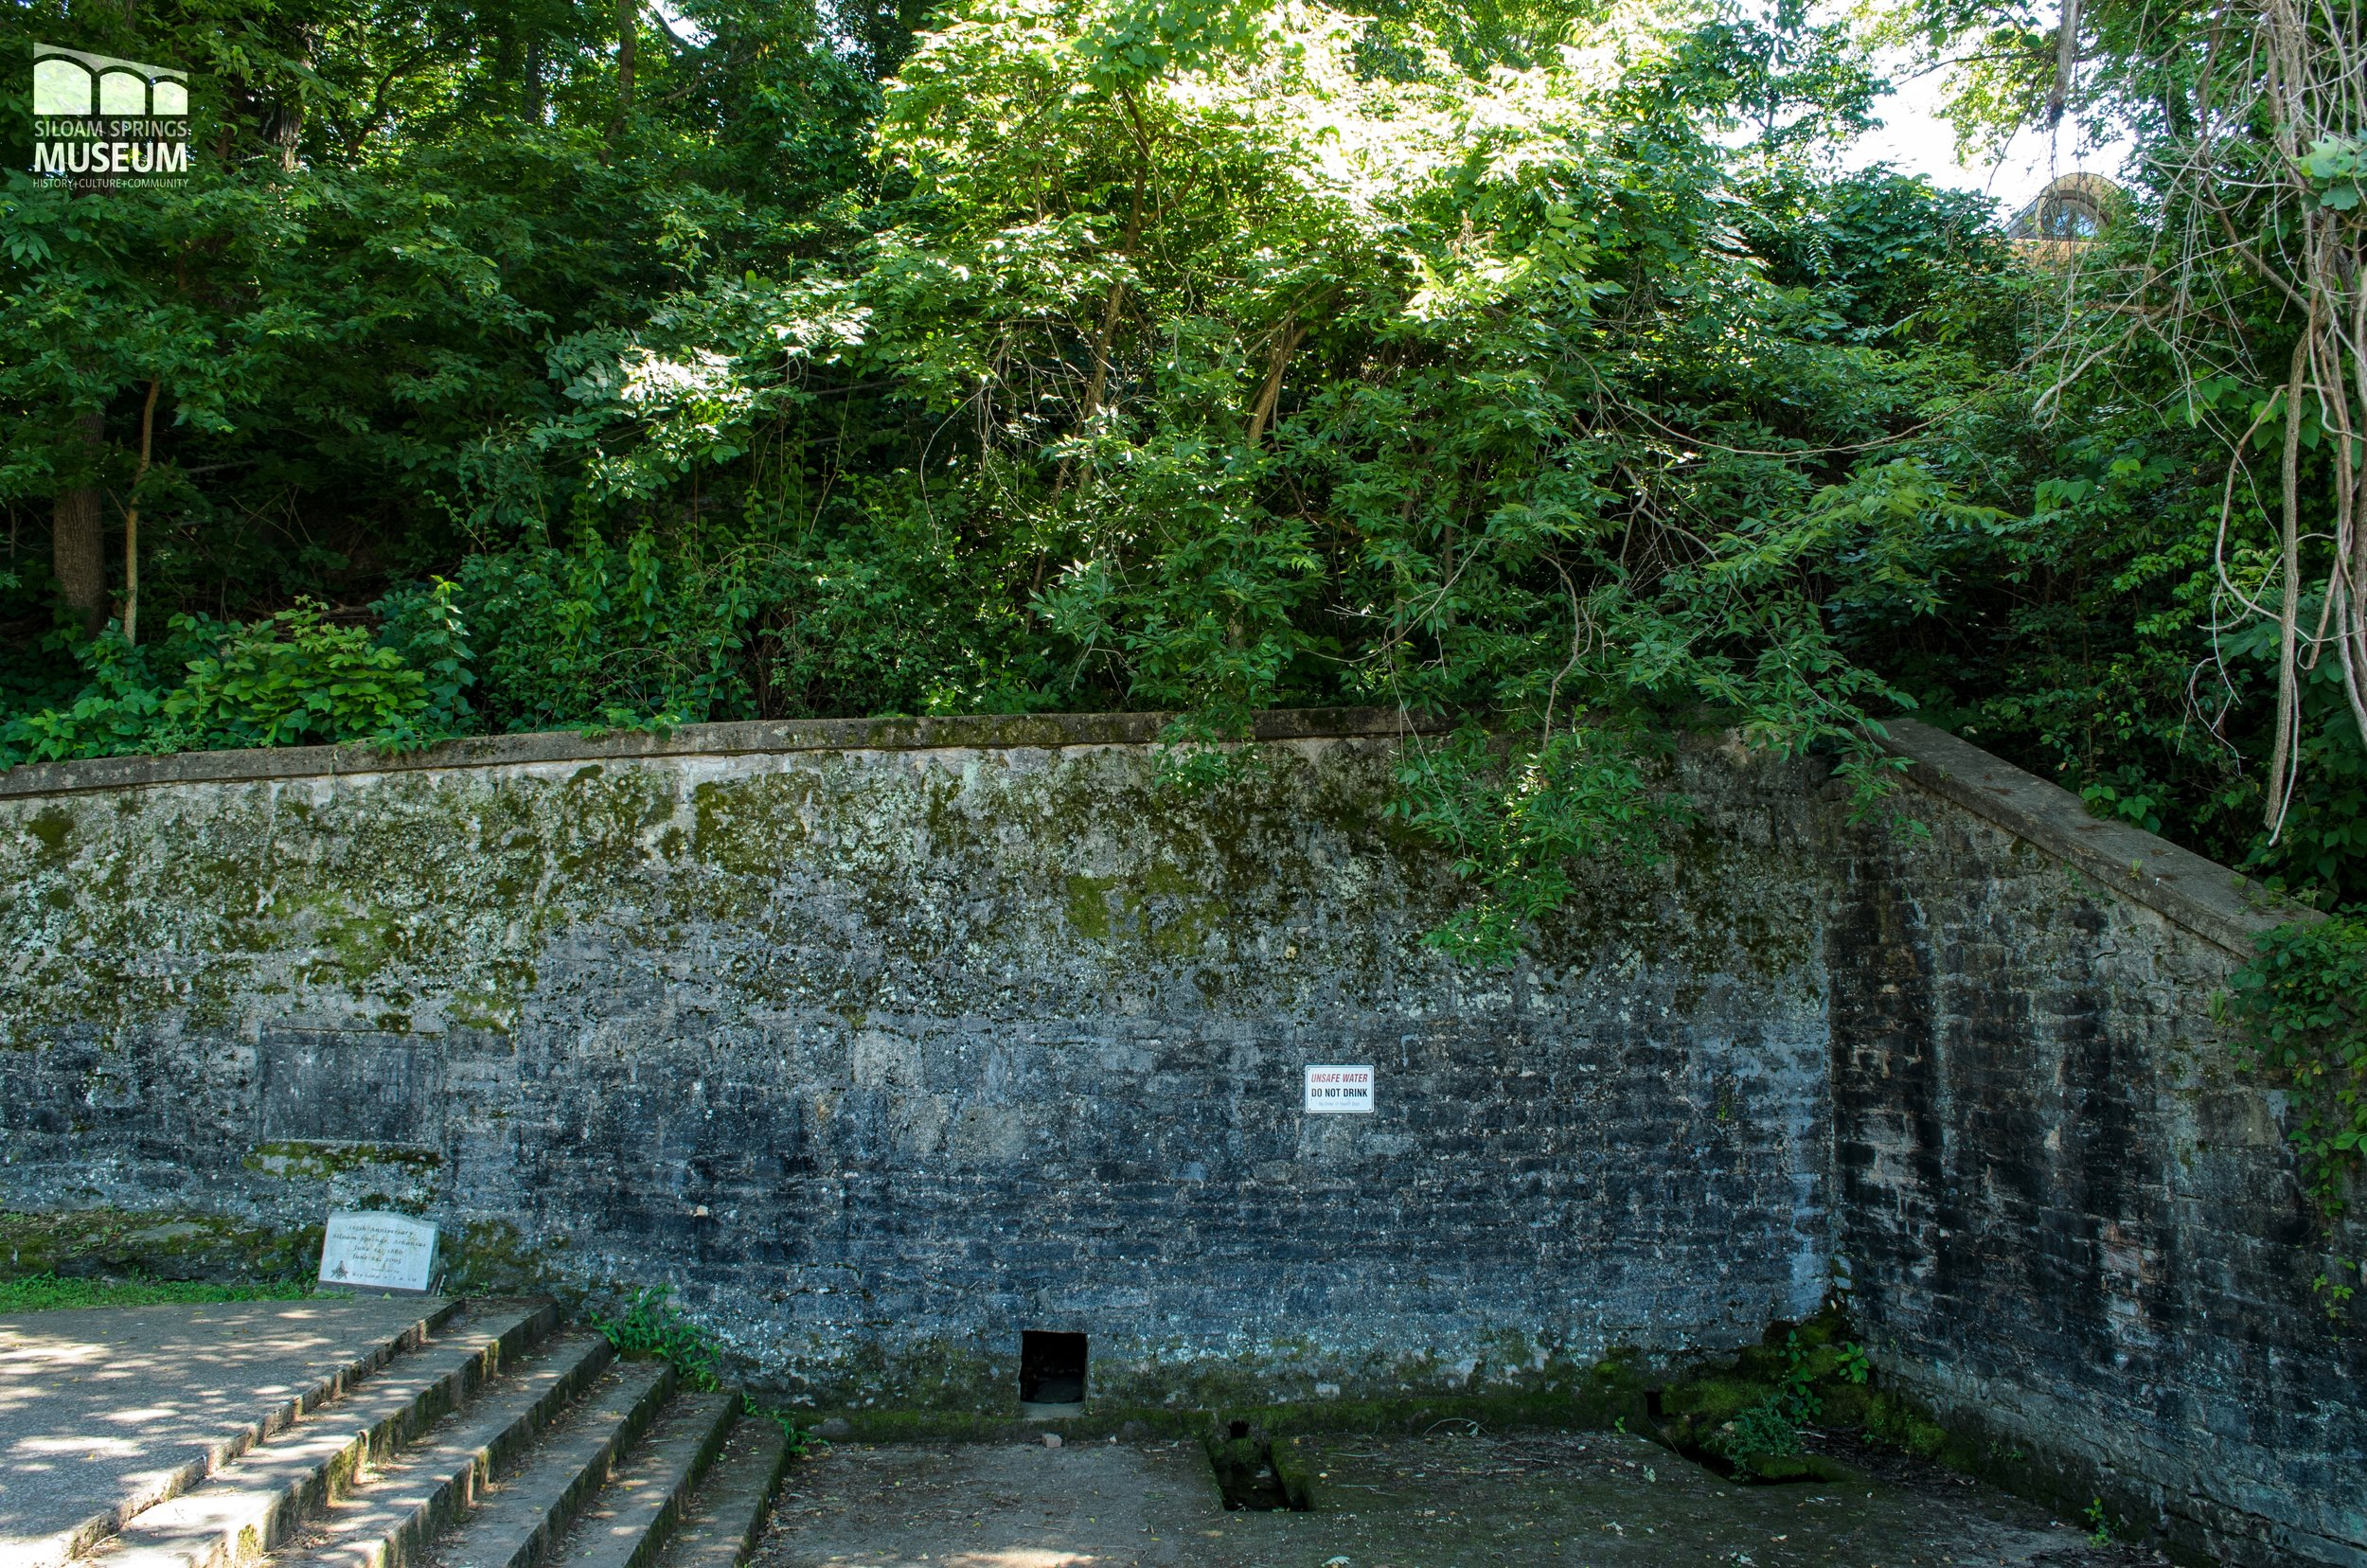 The 1897 wall still stands, but the natural rock shelf has once again been covered.